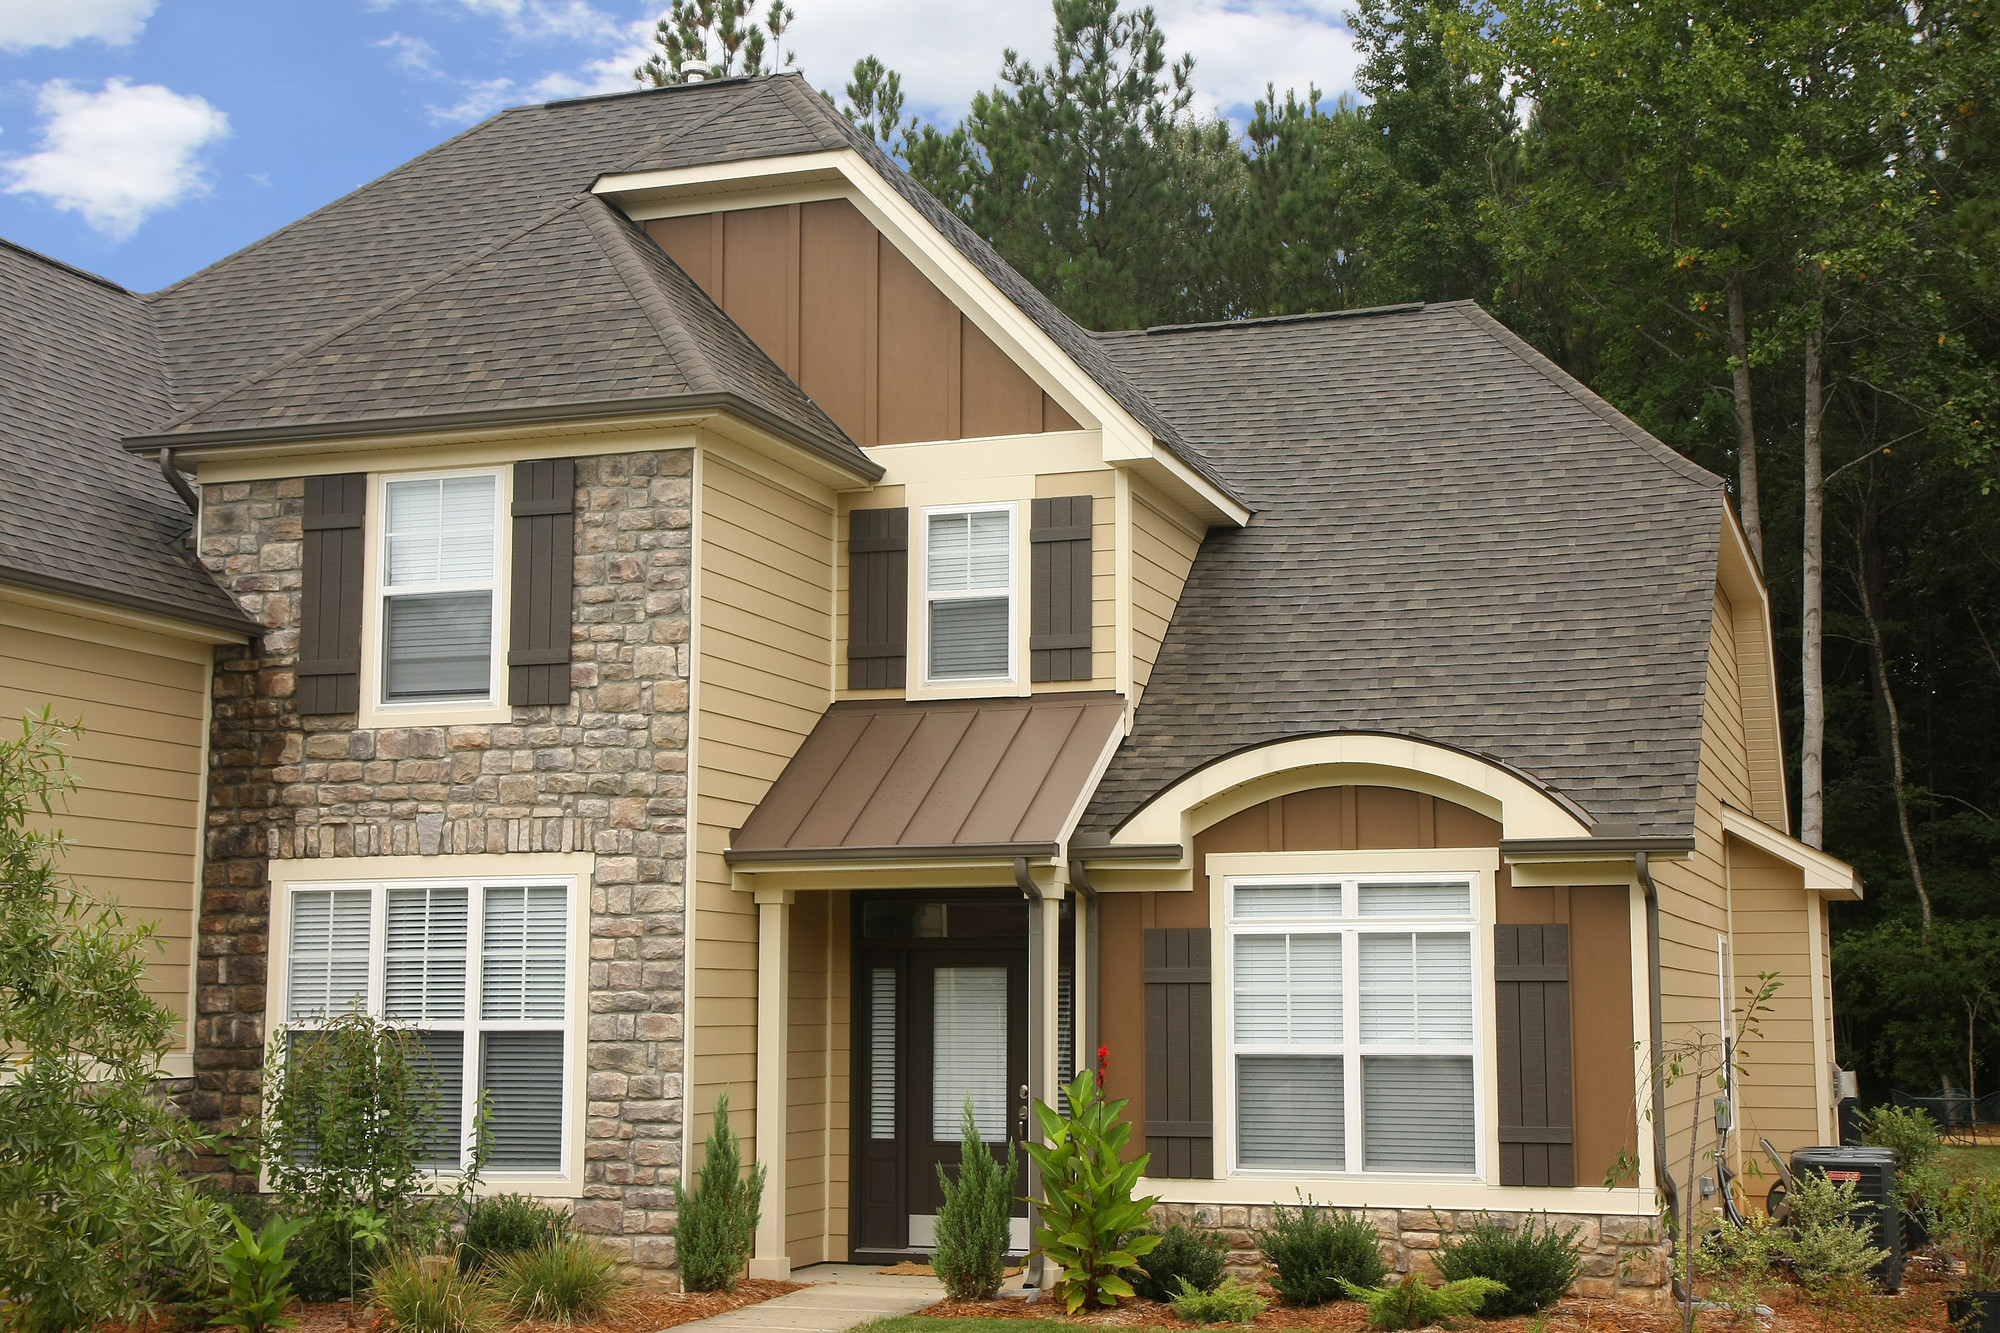 Most Popular Types of Siding for Homes – HomesFeed